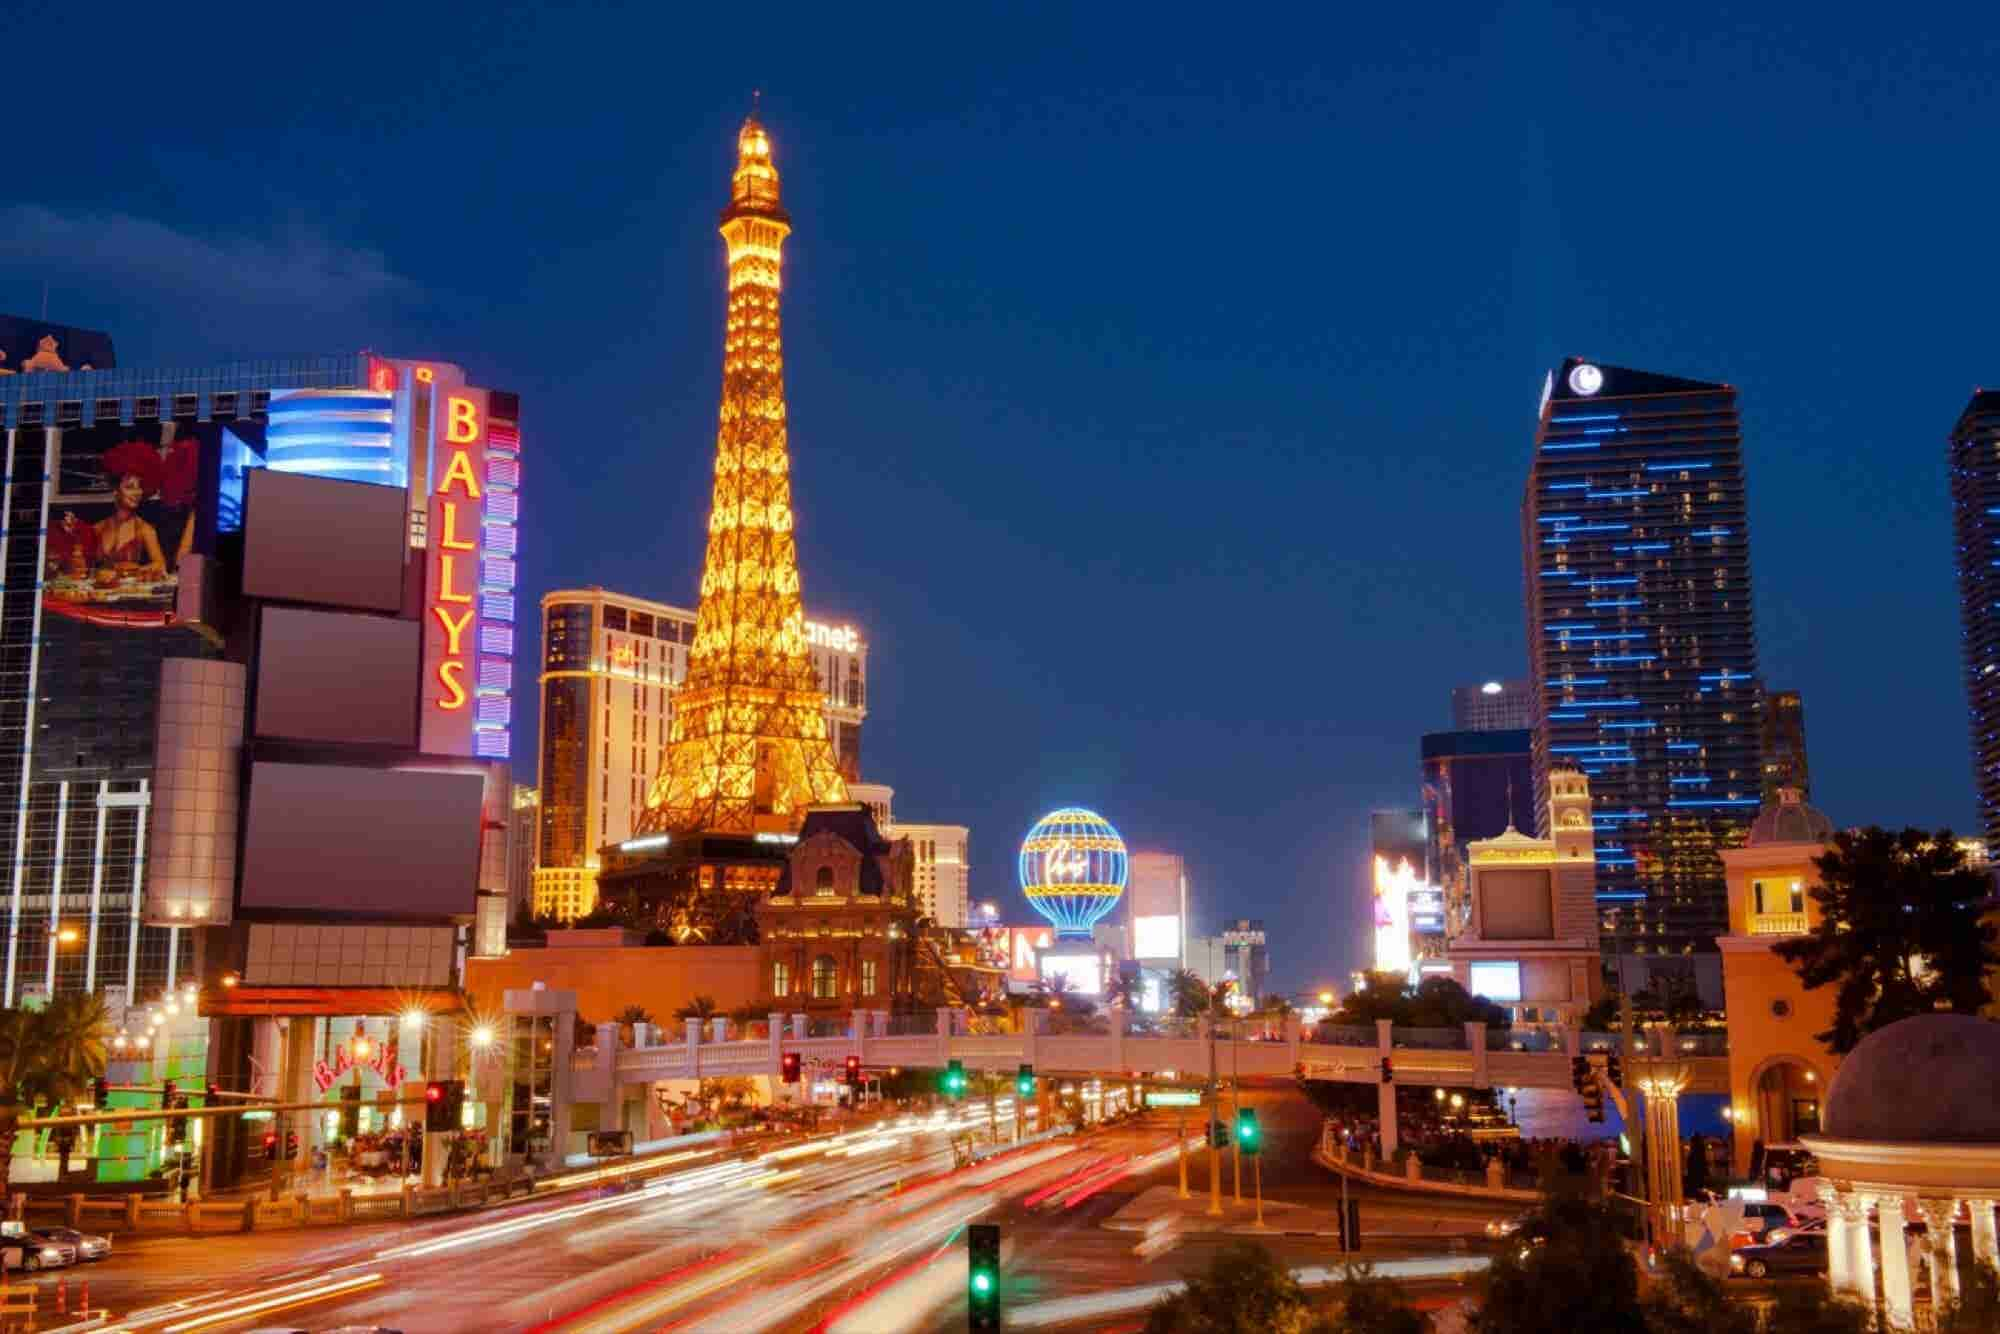 Sorry, But No You Can't Smoke Marijuana on the Las Vegas Strip Yet.